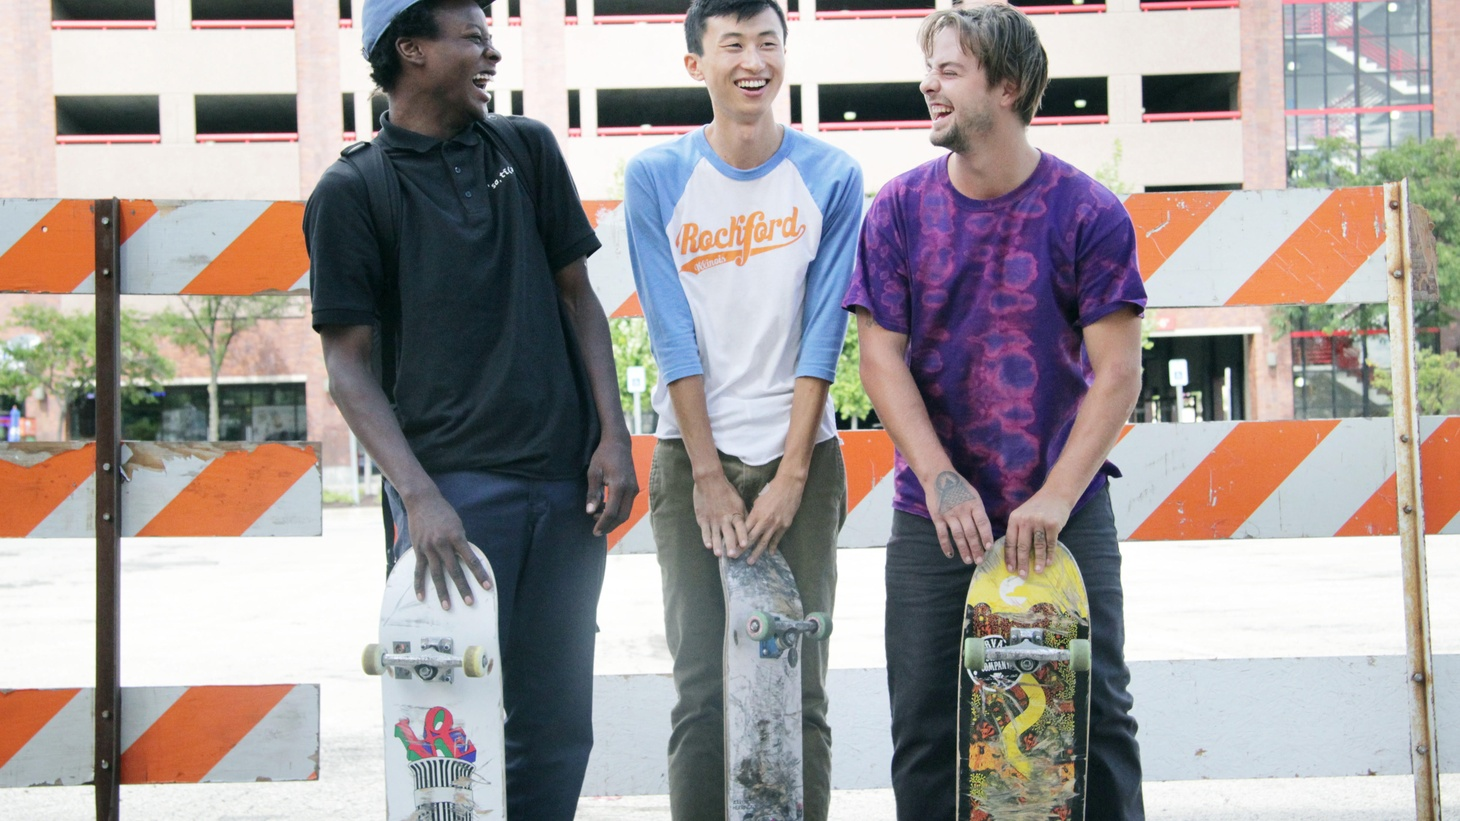 Growing up in Rockford, Illinois--a city outside Chicago that's seen better days--Bing Liu was obsessed with making skateboarding videos. Over the course of more than a decade, one of those mini-movies morphed into a feature-length documentary.